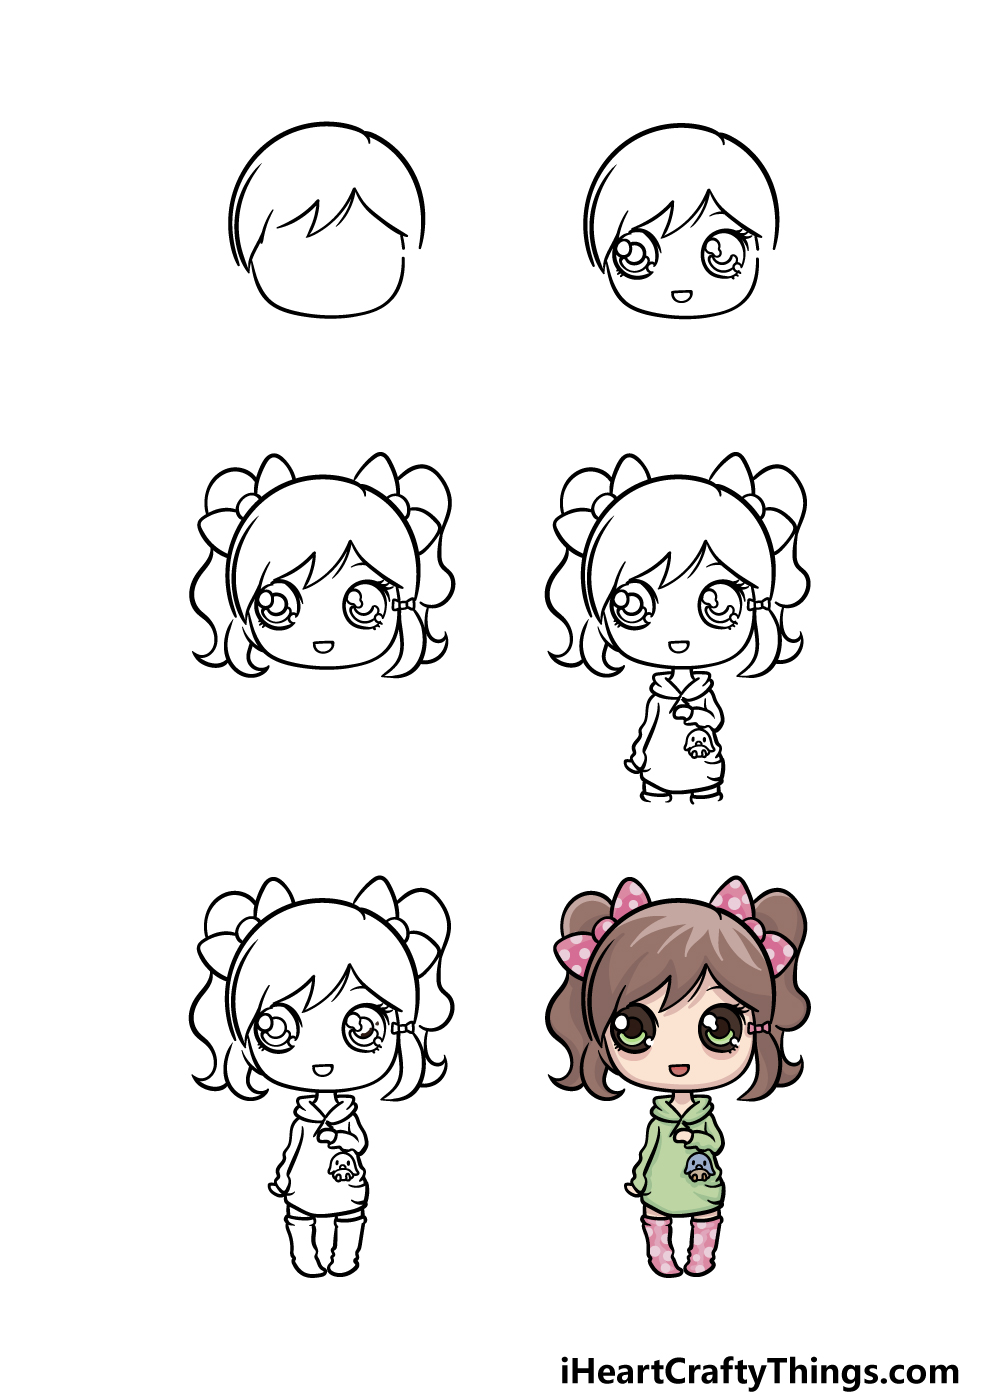 how to draw a doll in 6 steps